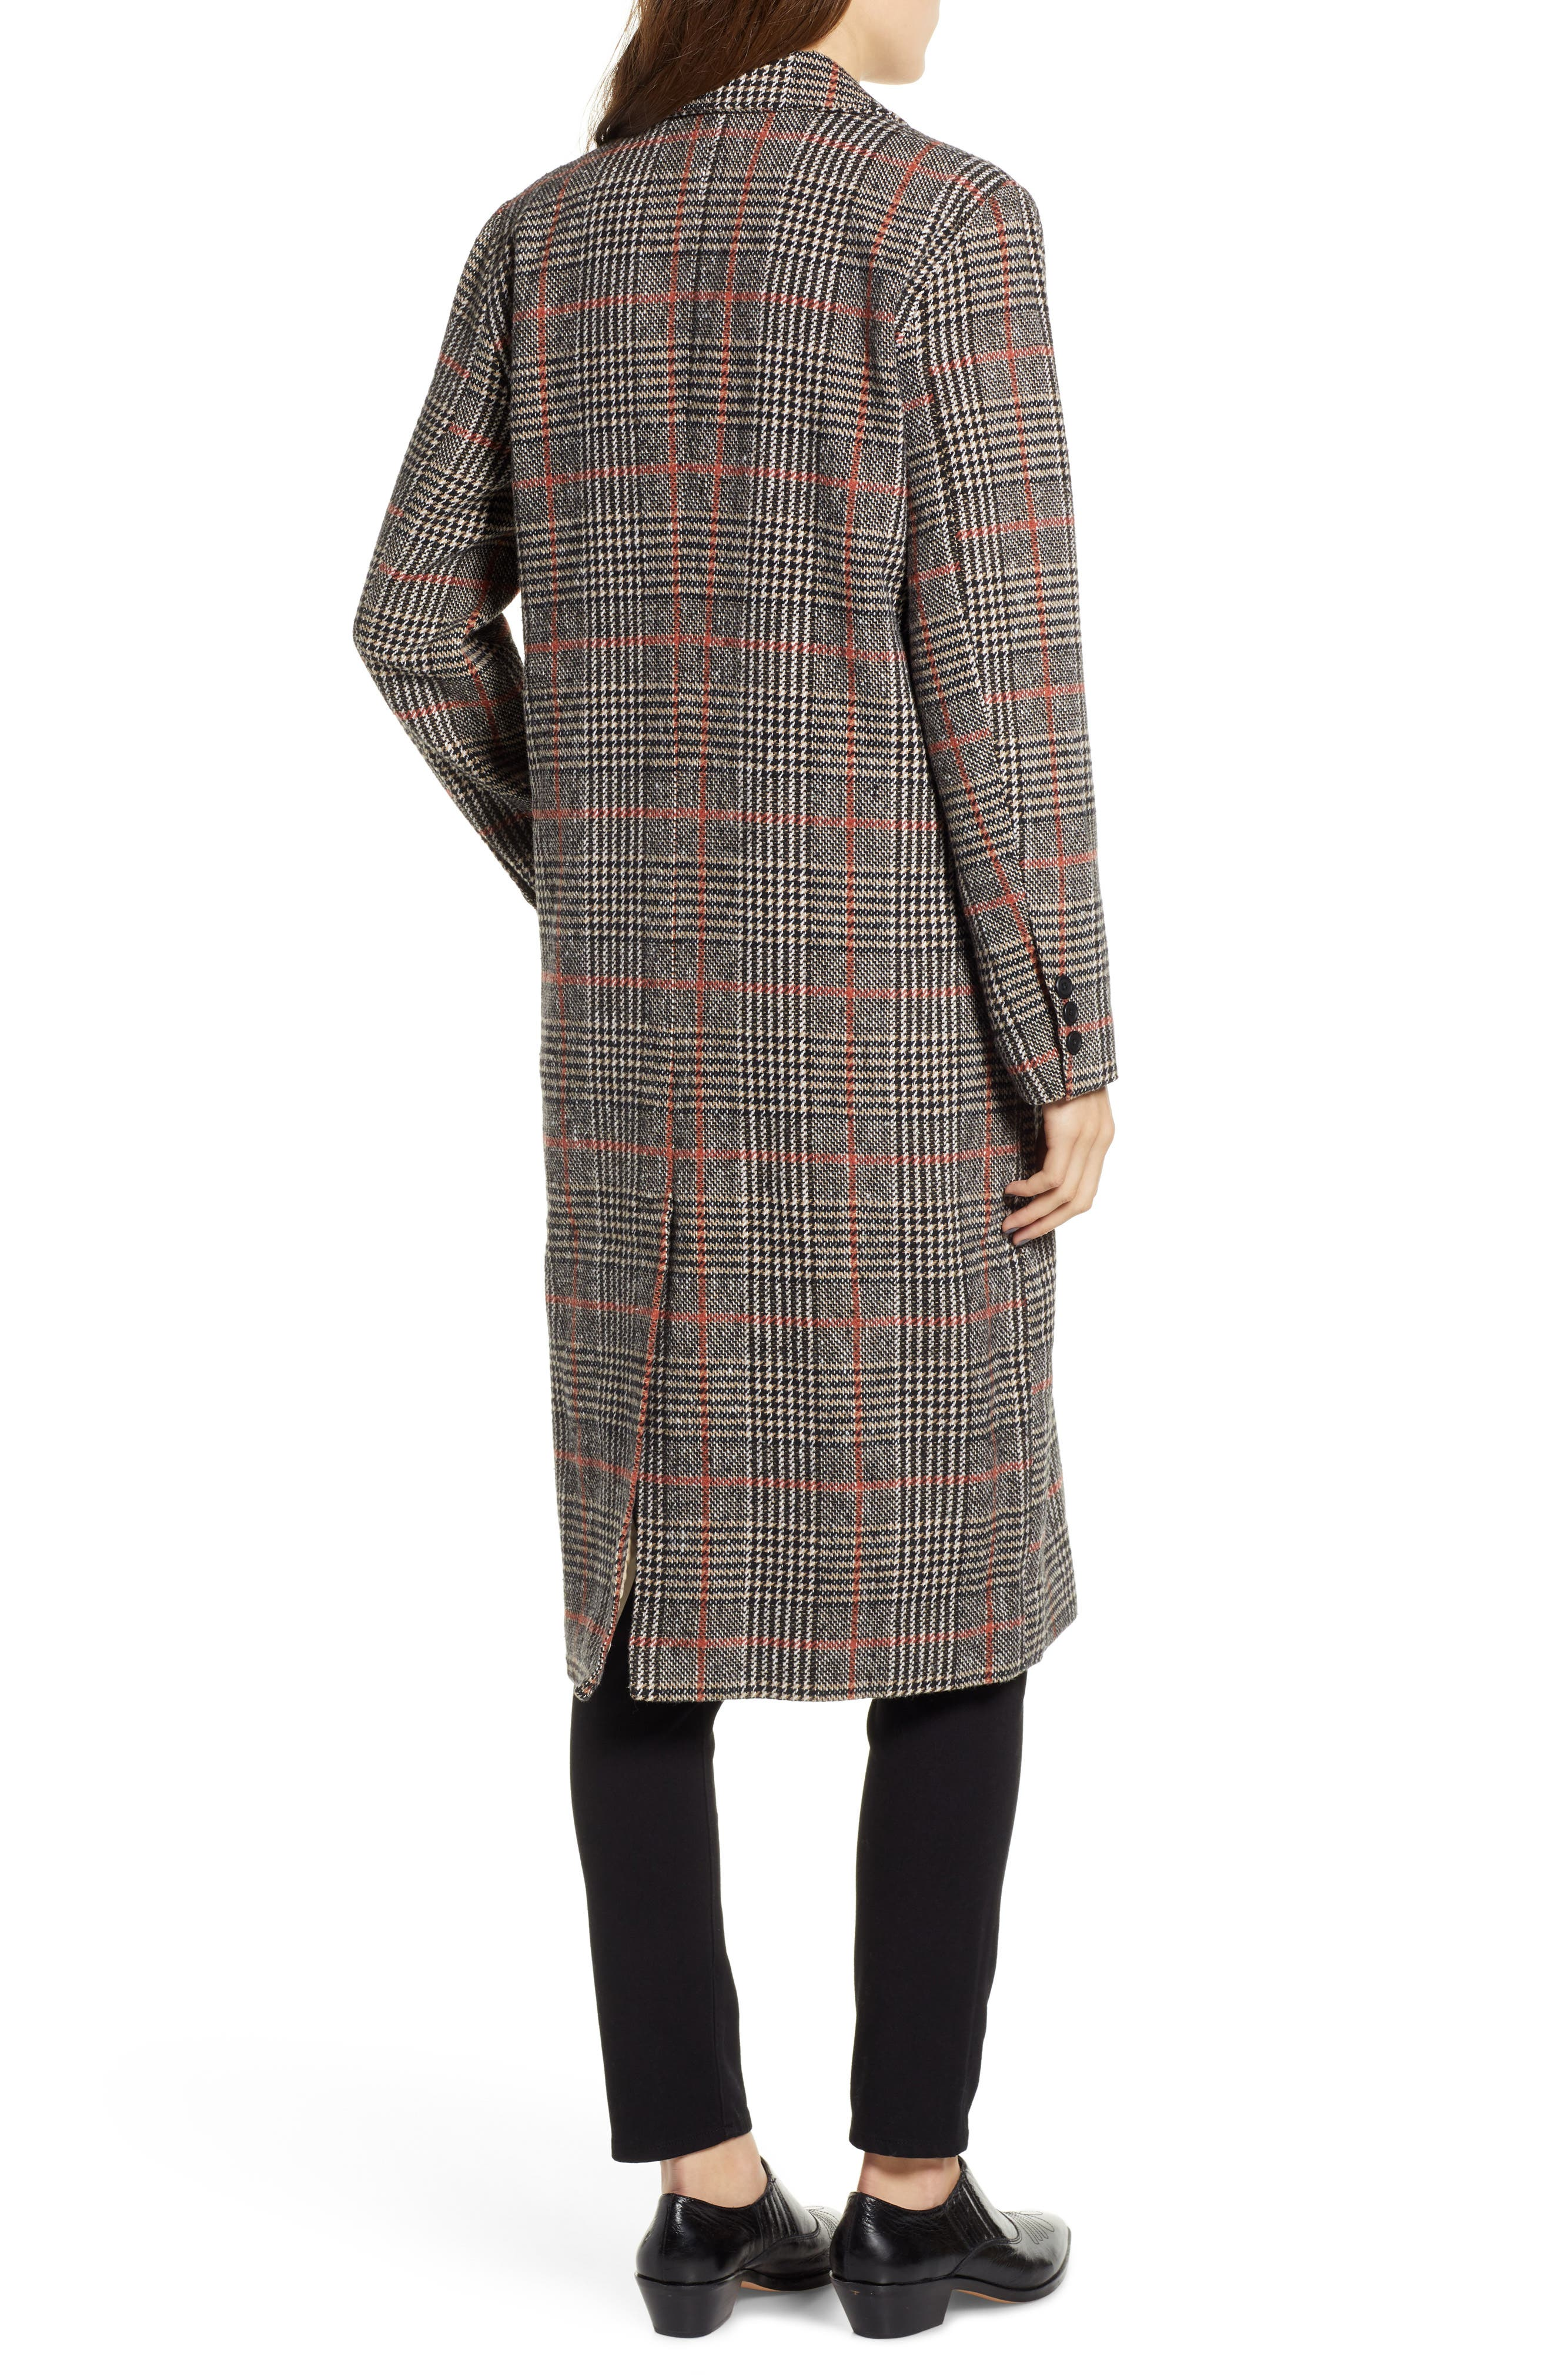 CUPCAKES AND CASHMERE,                             Plaid Duster Jacket,                             Alternate thumbnail 2, color,                             020